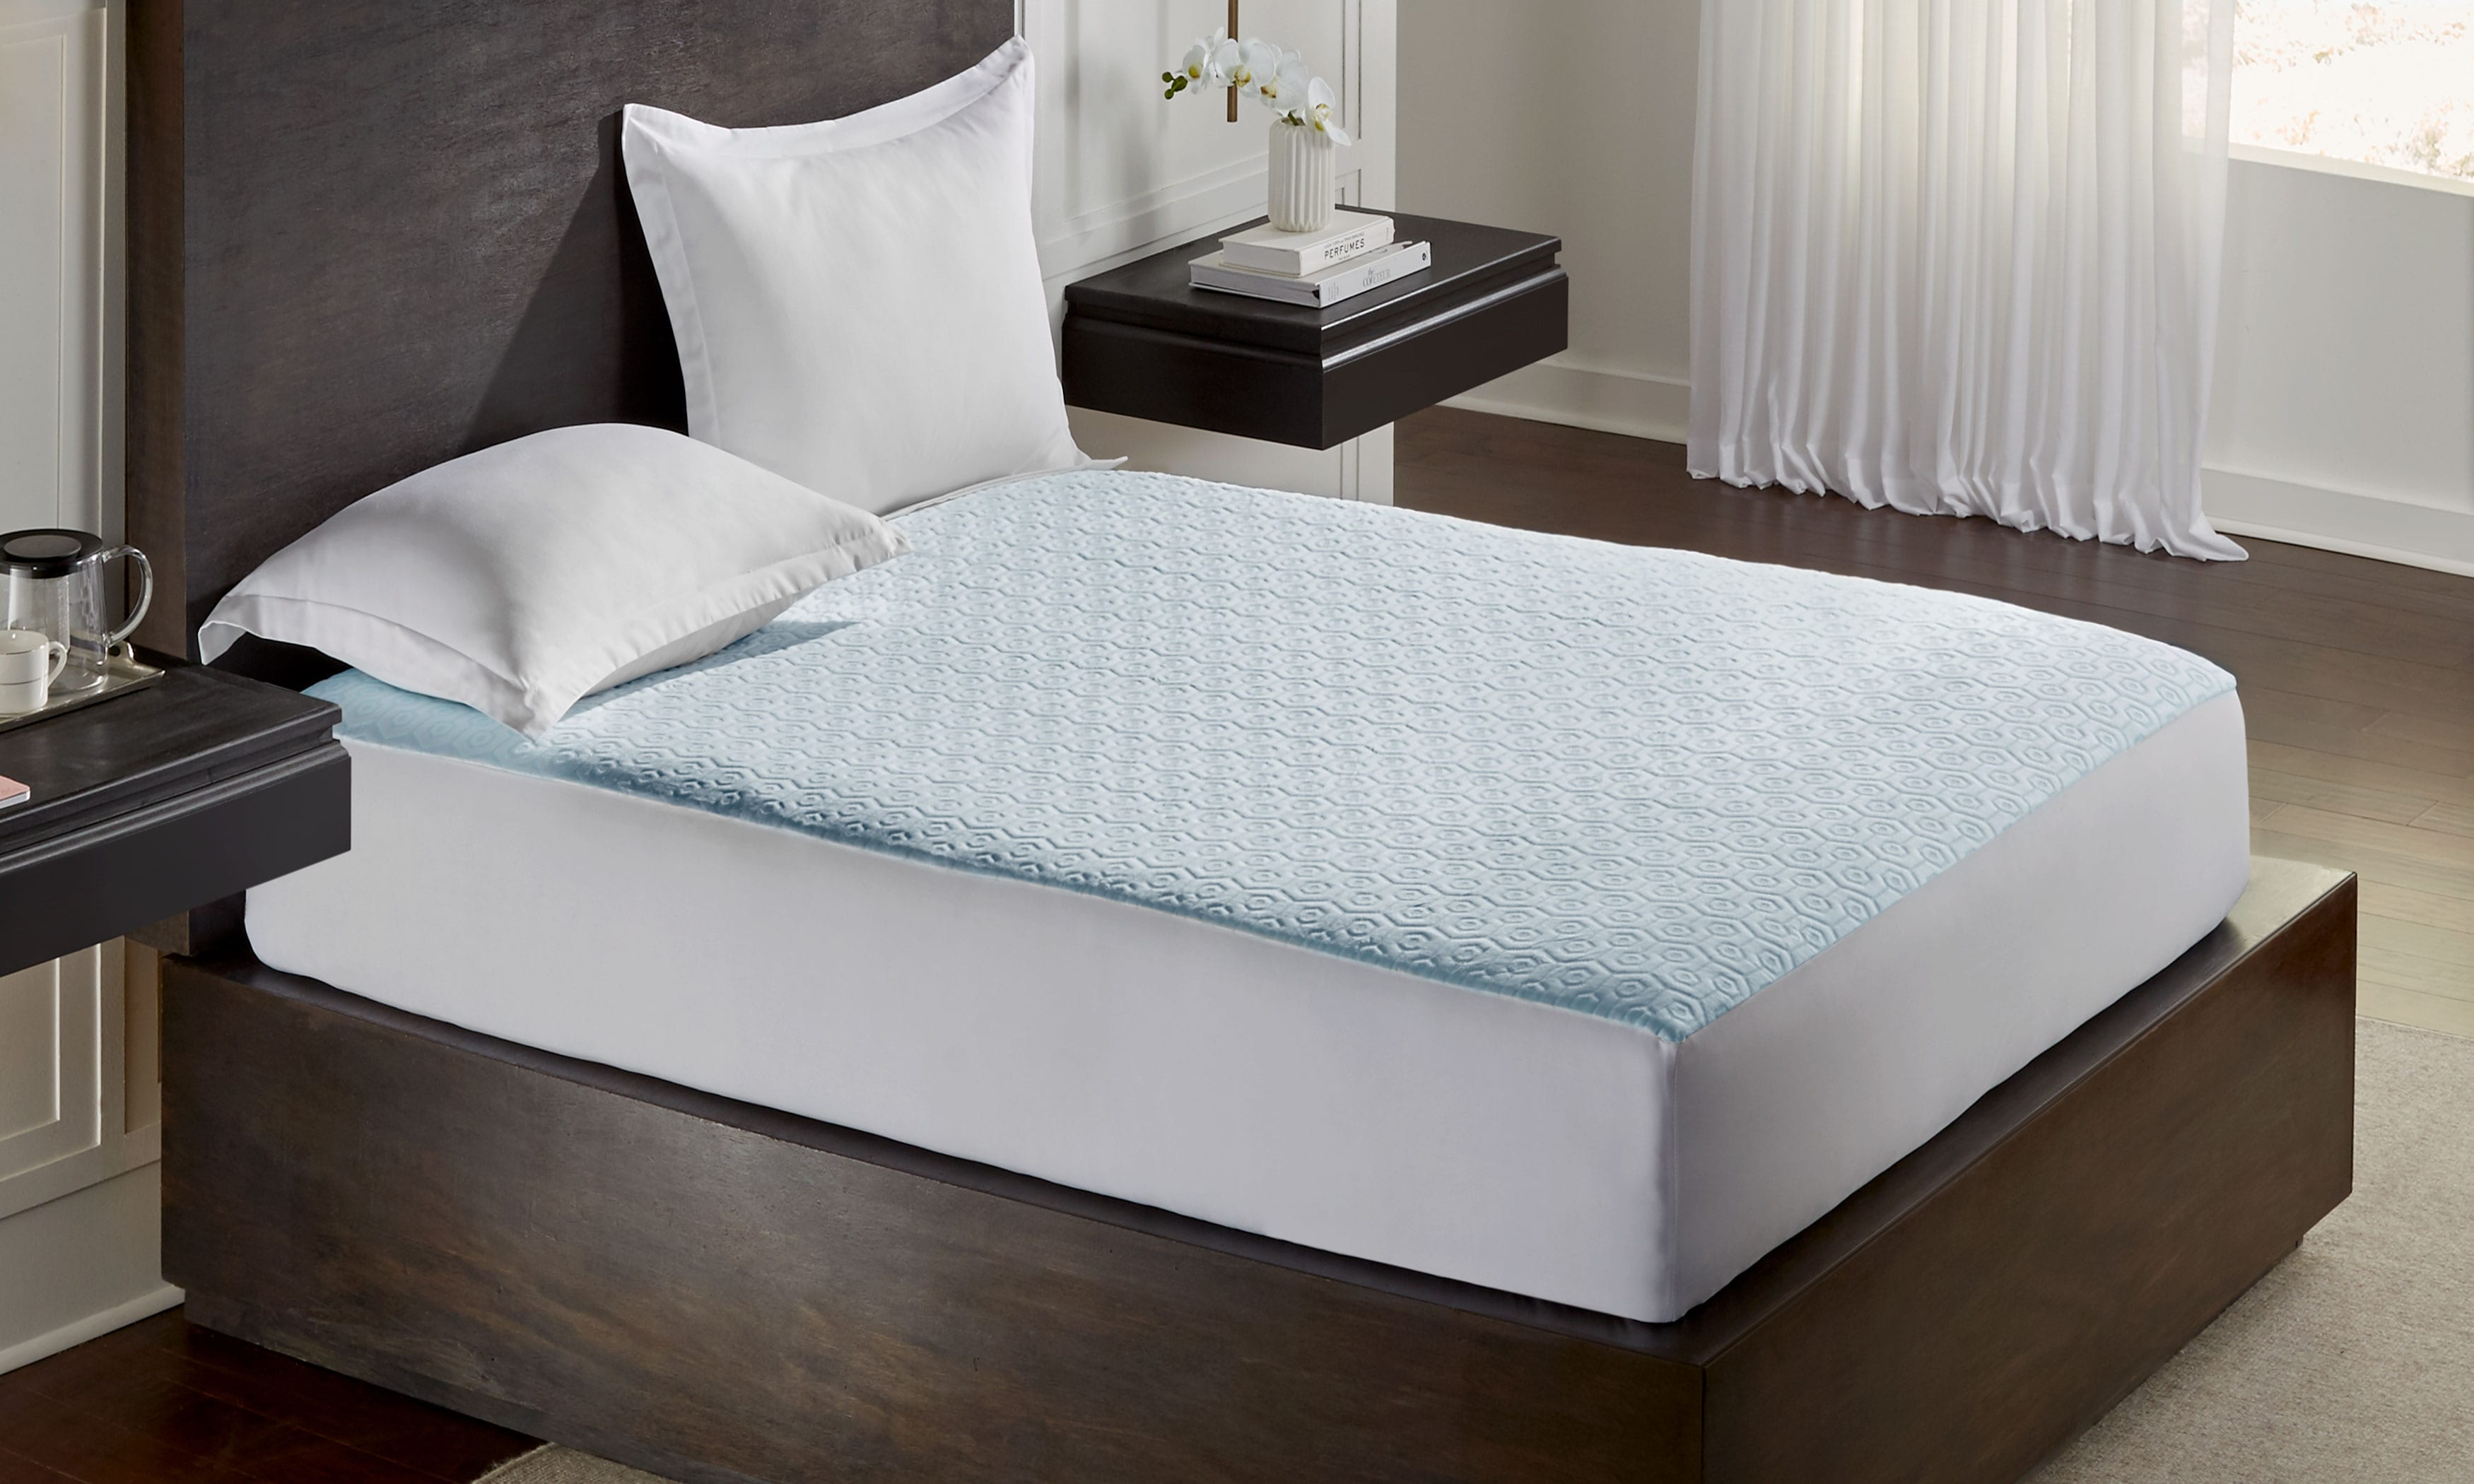 Serta Mattress Uk The Best Cooling Mattress Pad Top 7 Products Of 2019 Snoremagazine